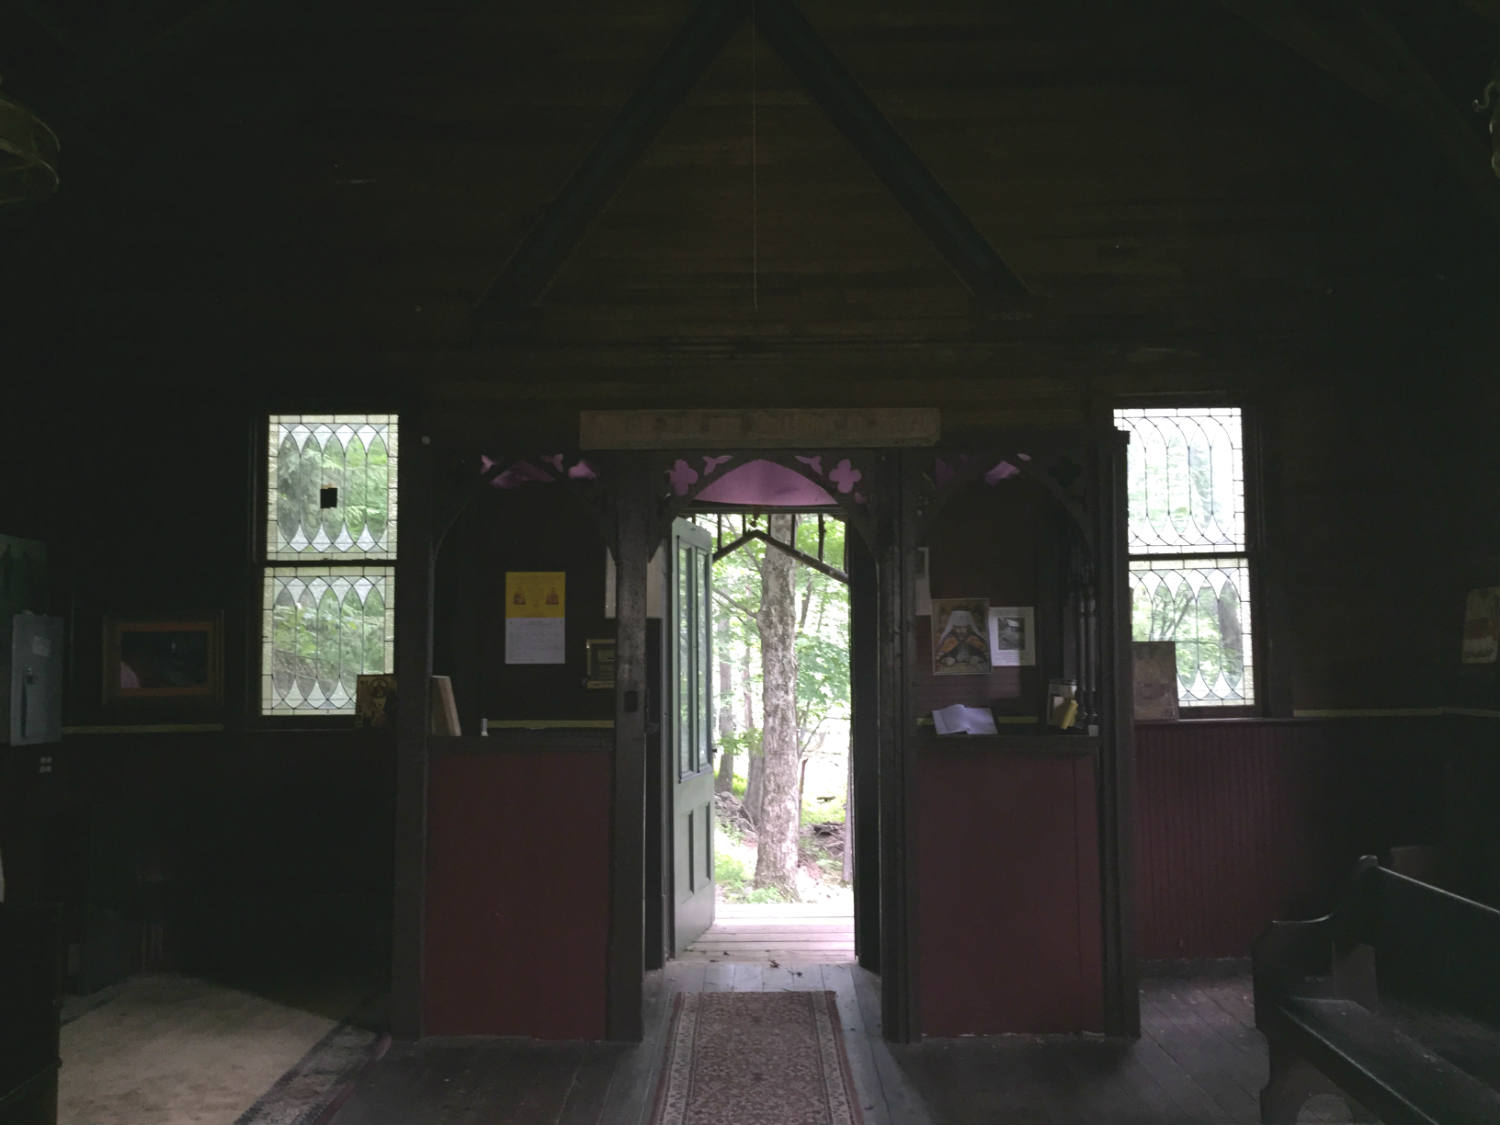 Inside view of doorway to the Holy Transfiguration of Christ On the Mount in Woodstock, New York